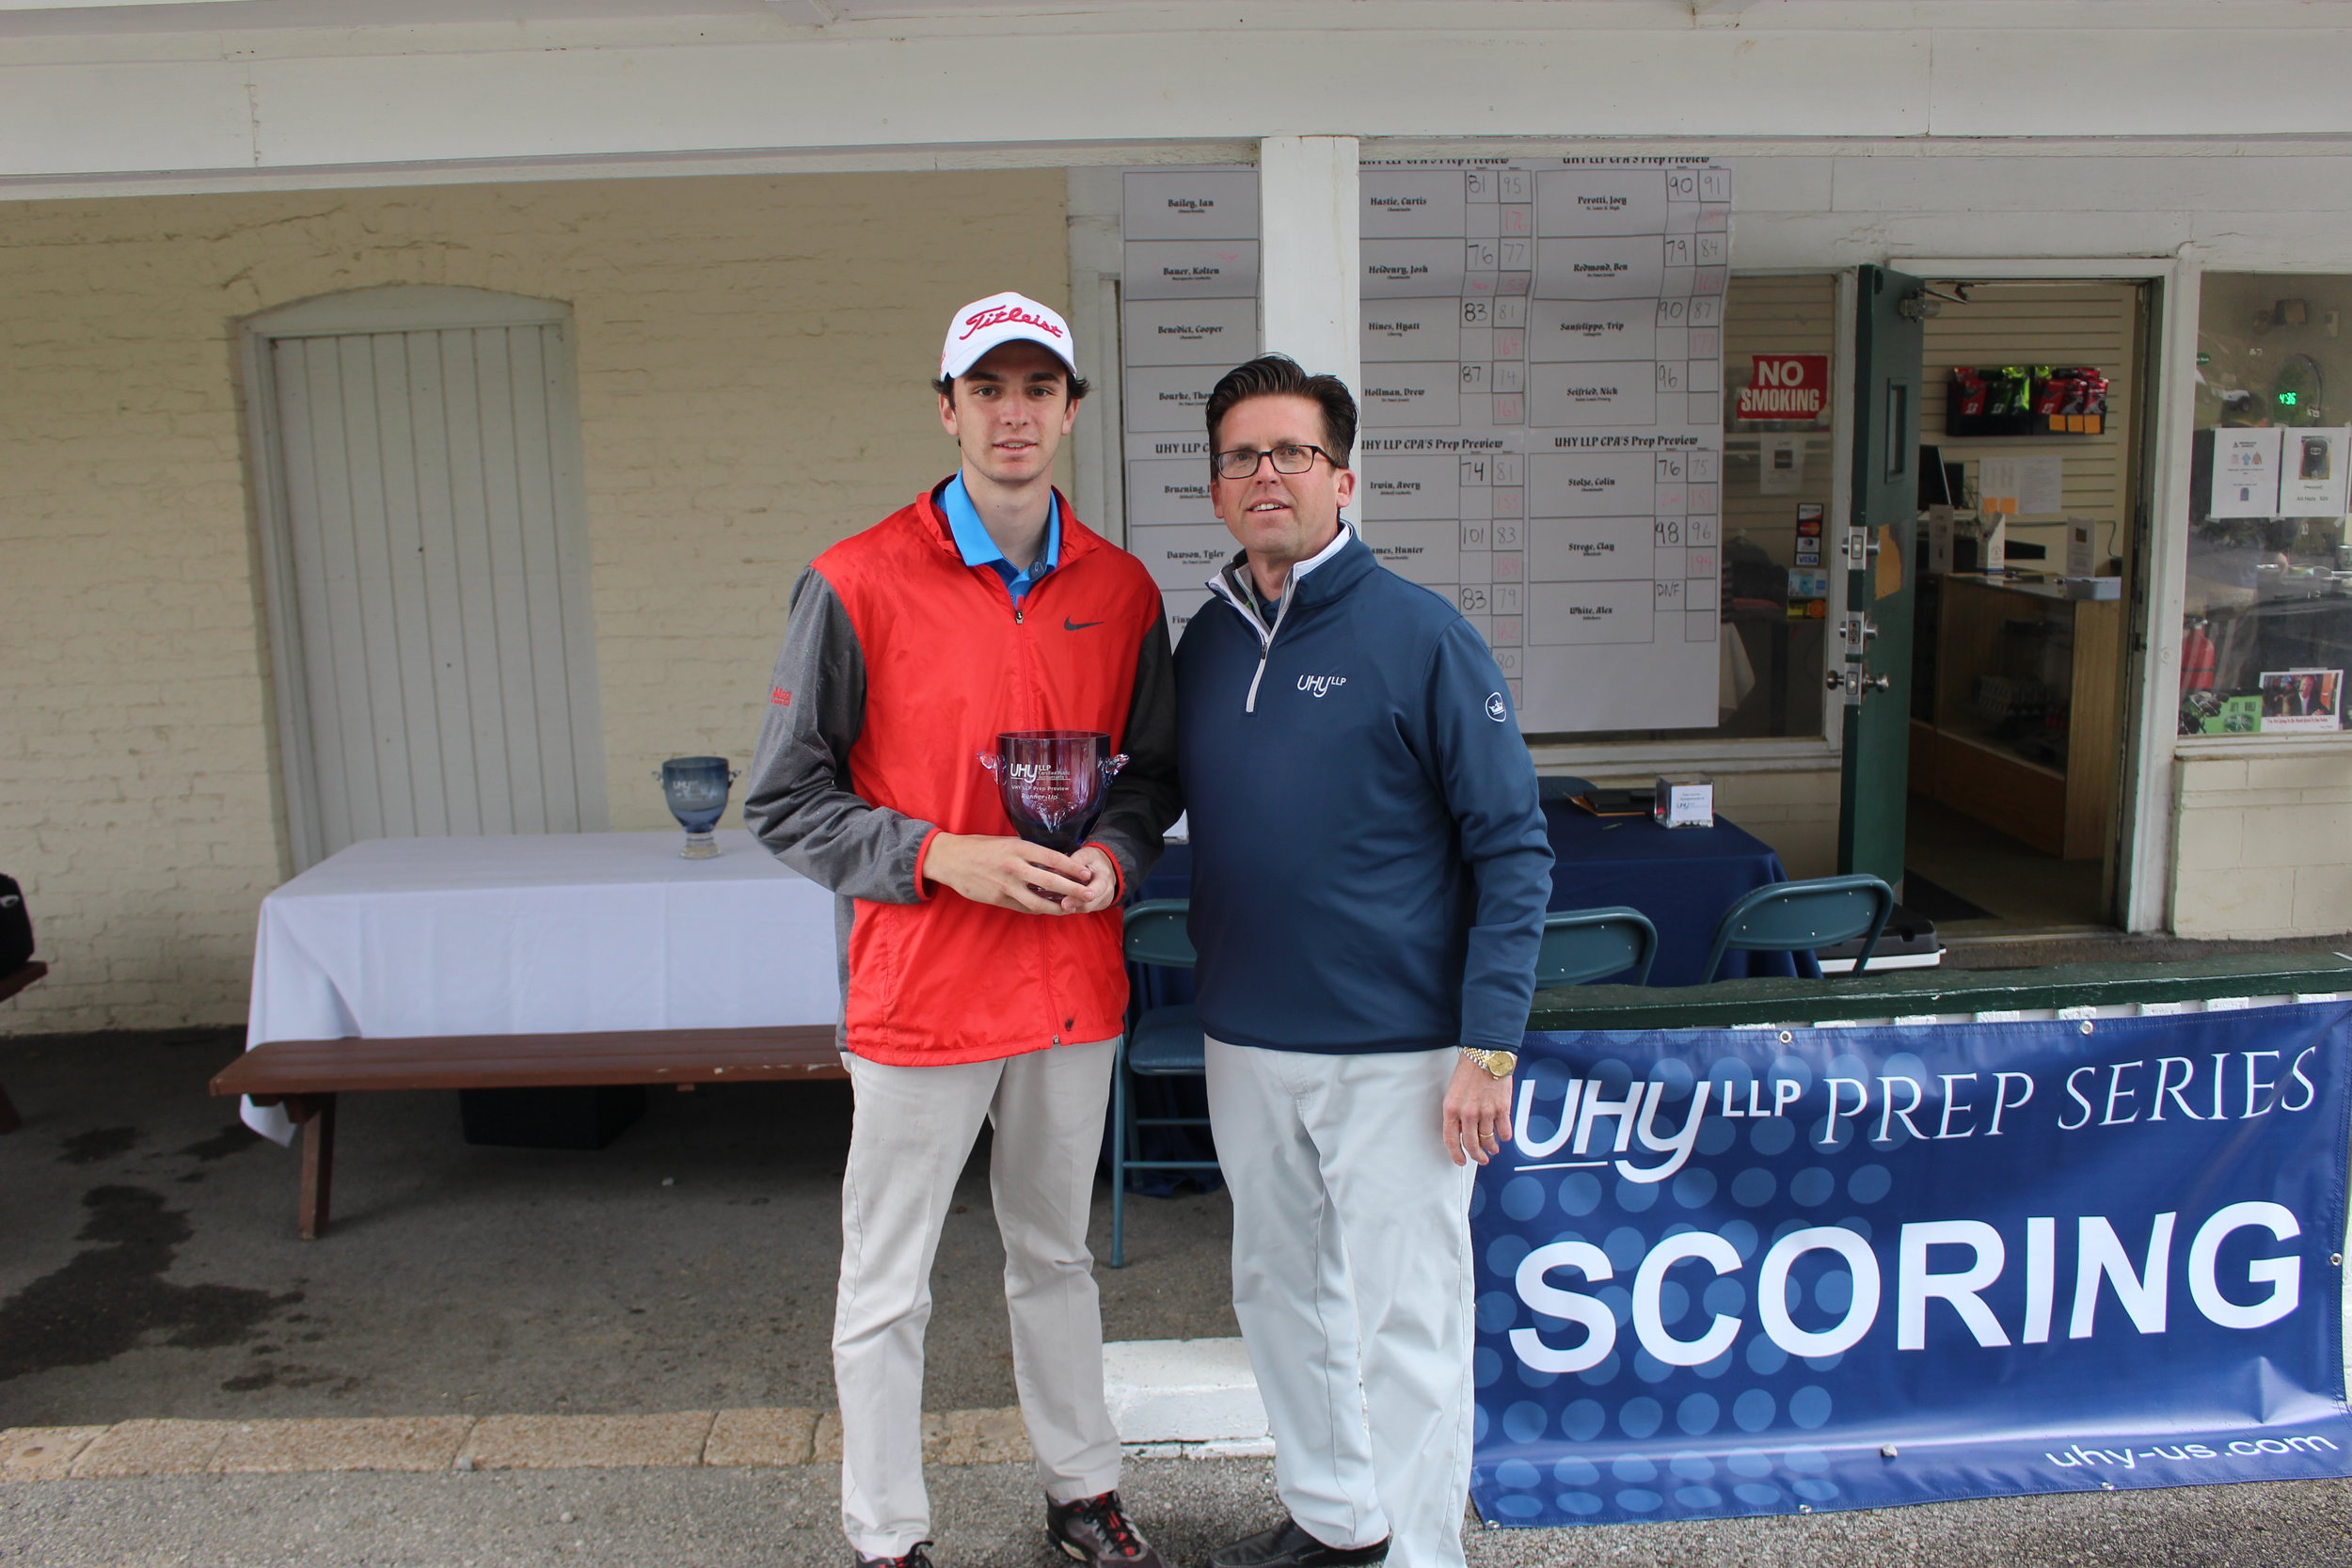 - Chaminade's Colin Stolze was the Runner-Up, shooting 76-75 for a 9 over par total of 151.